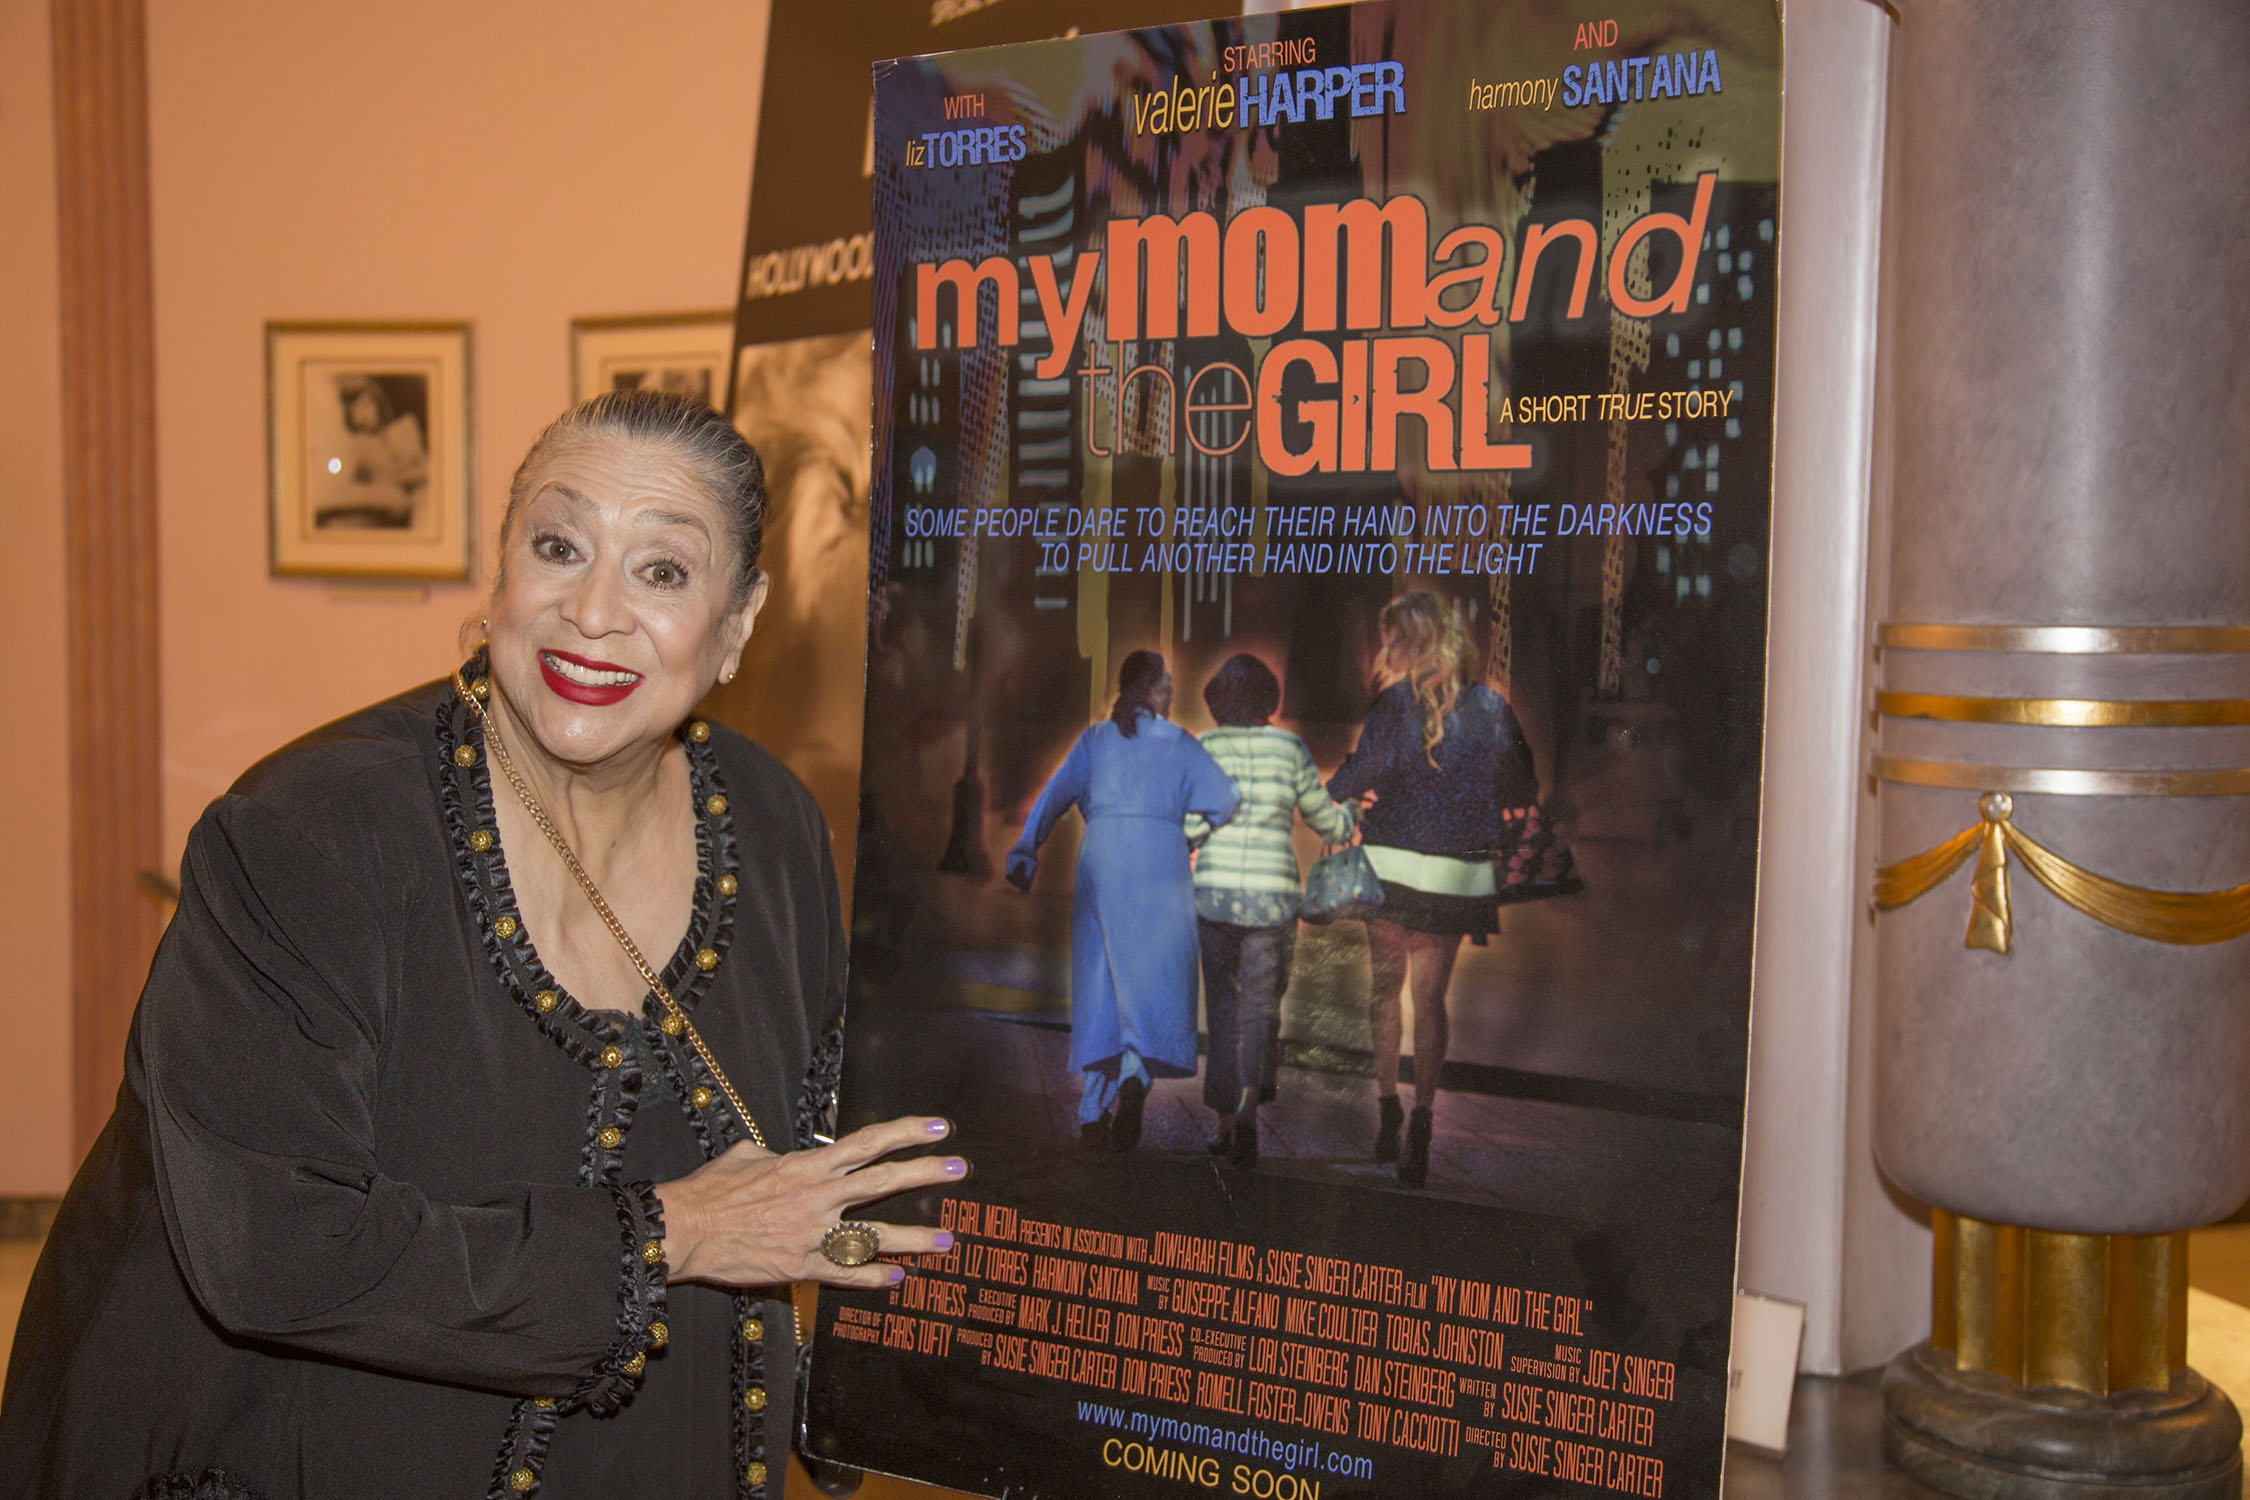 Liz Torres with My Mother and the Girl poster